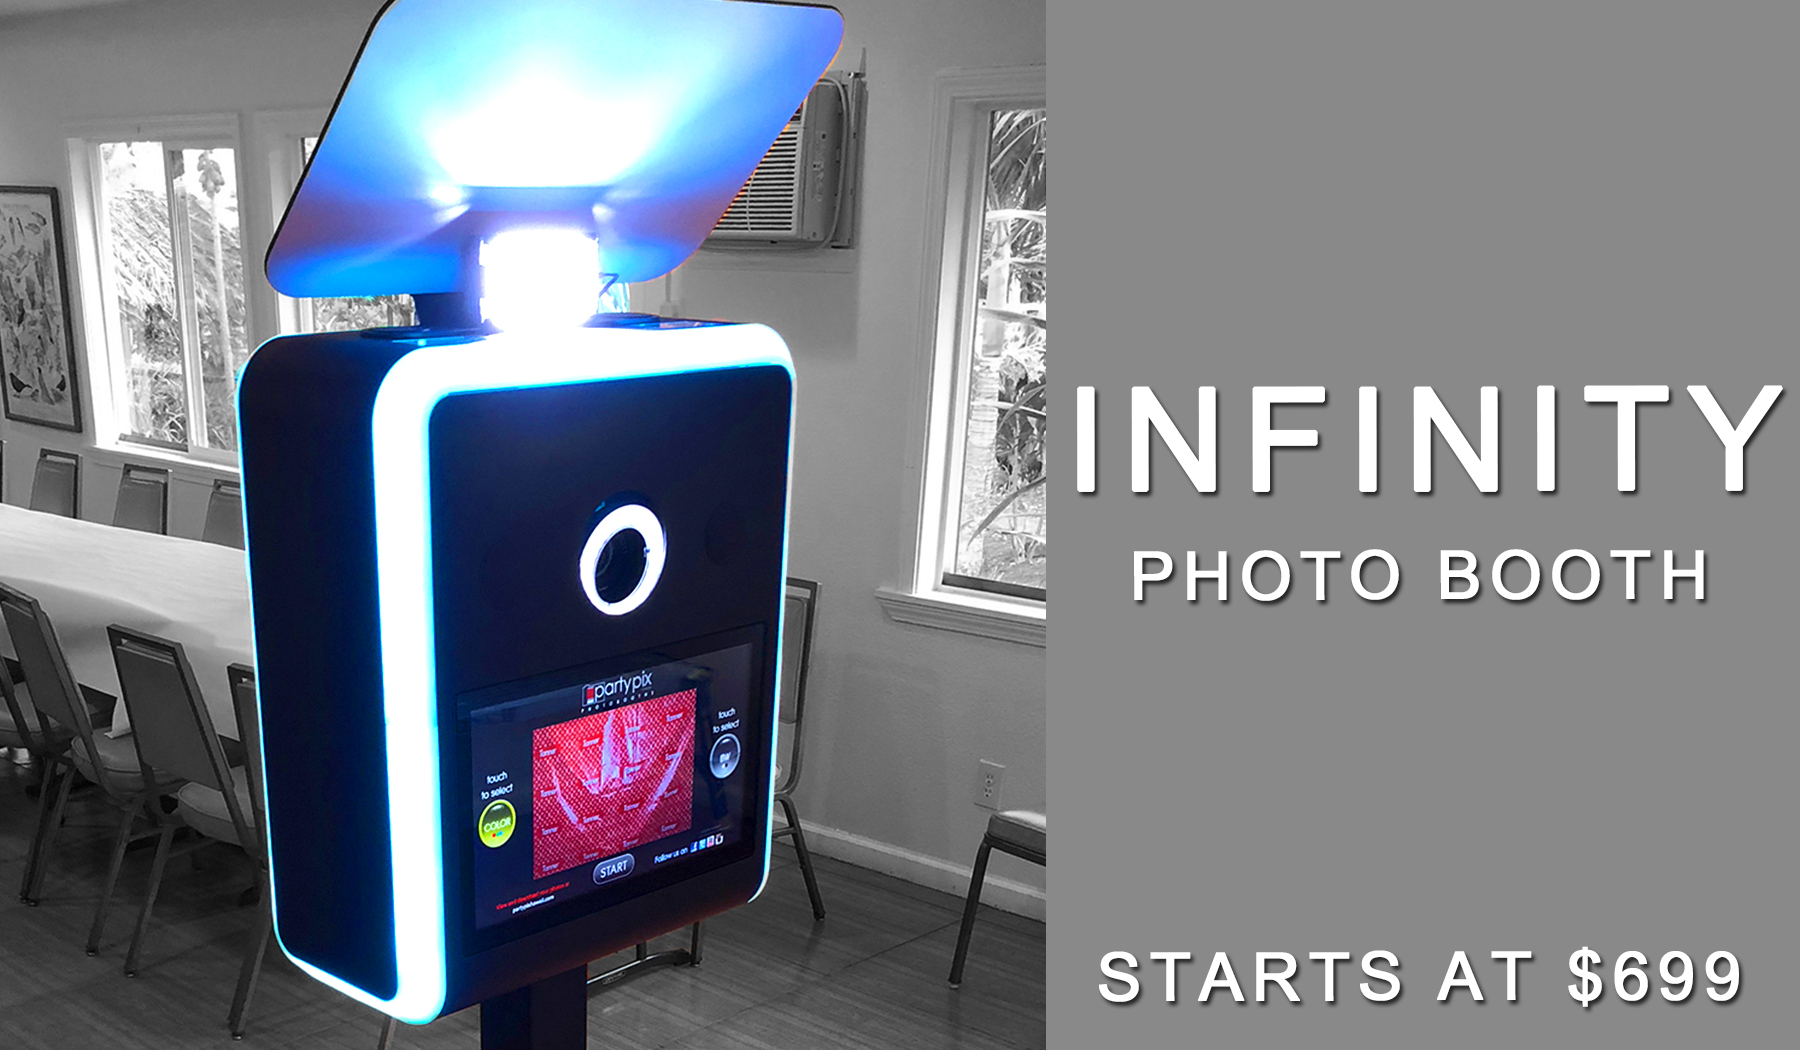 Infinity Photo Booth